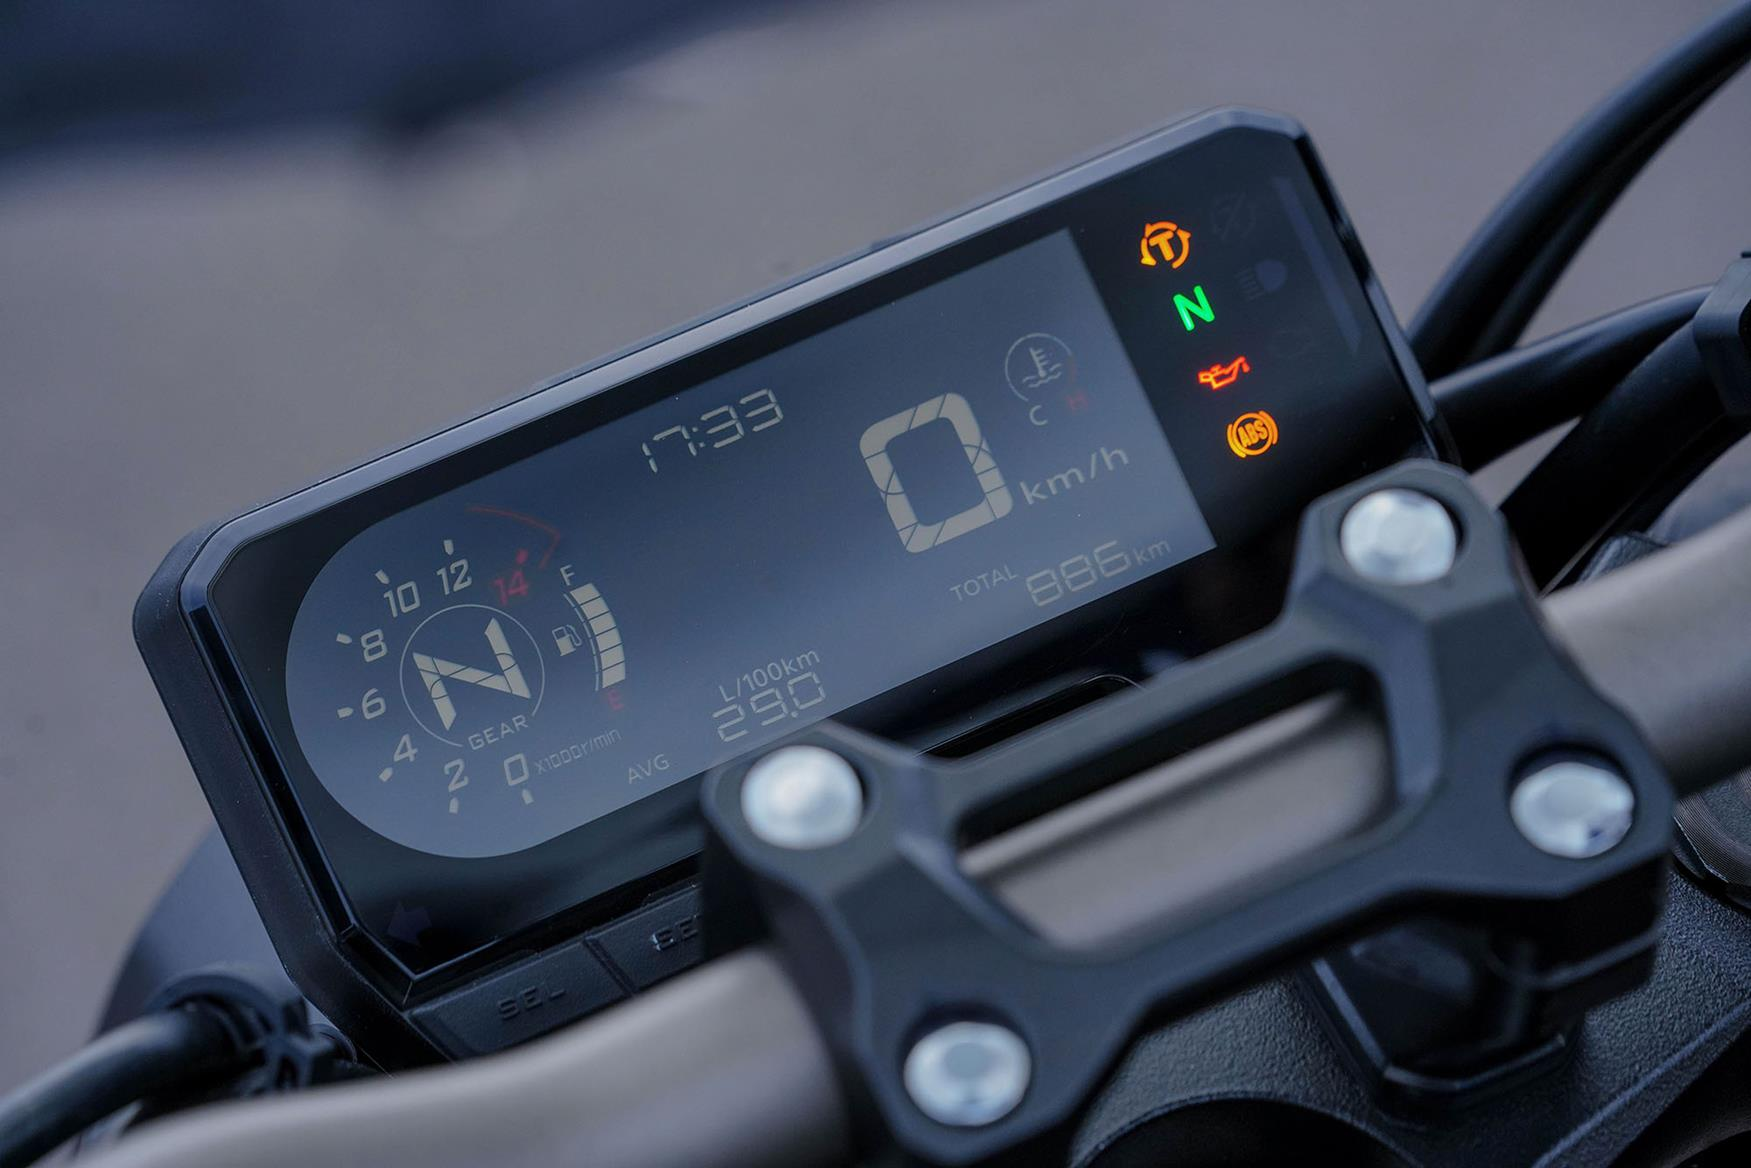 Honda CB650R dash is tough to see in daylight